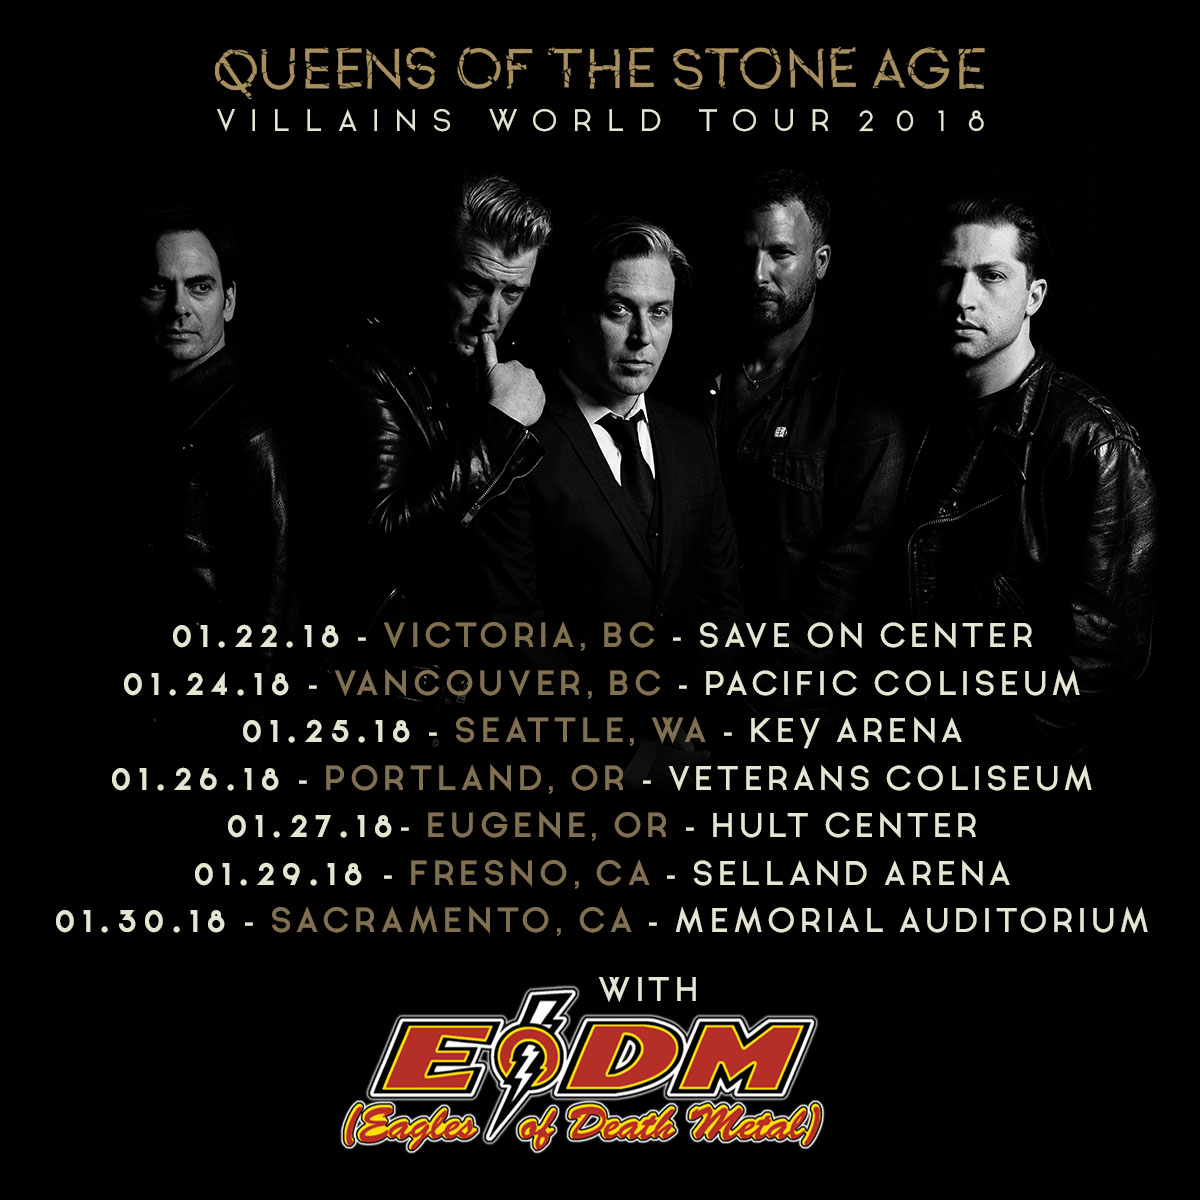 Seattle Wa January 25 2018 Seattle Key Arena 305 Harrison St